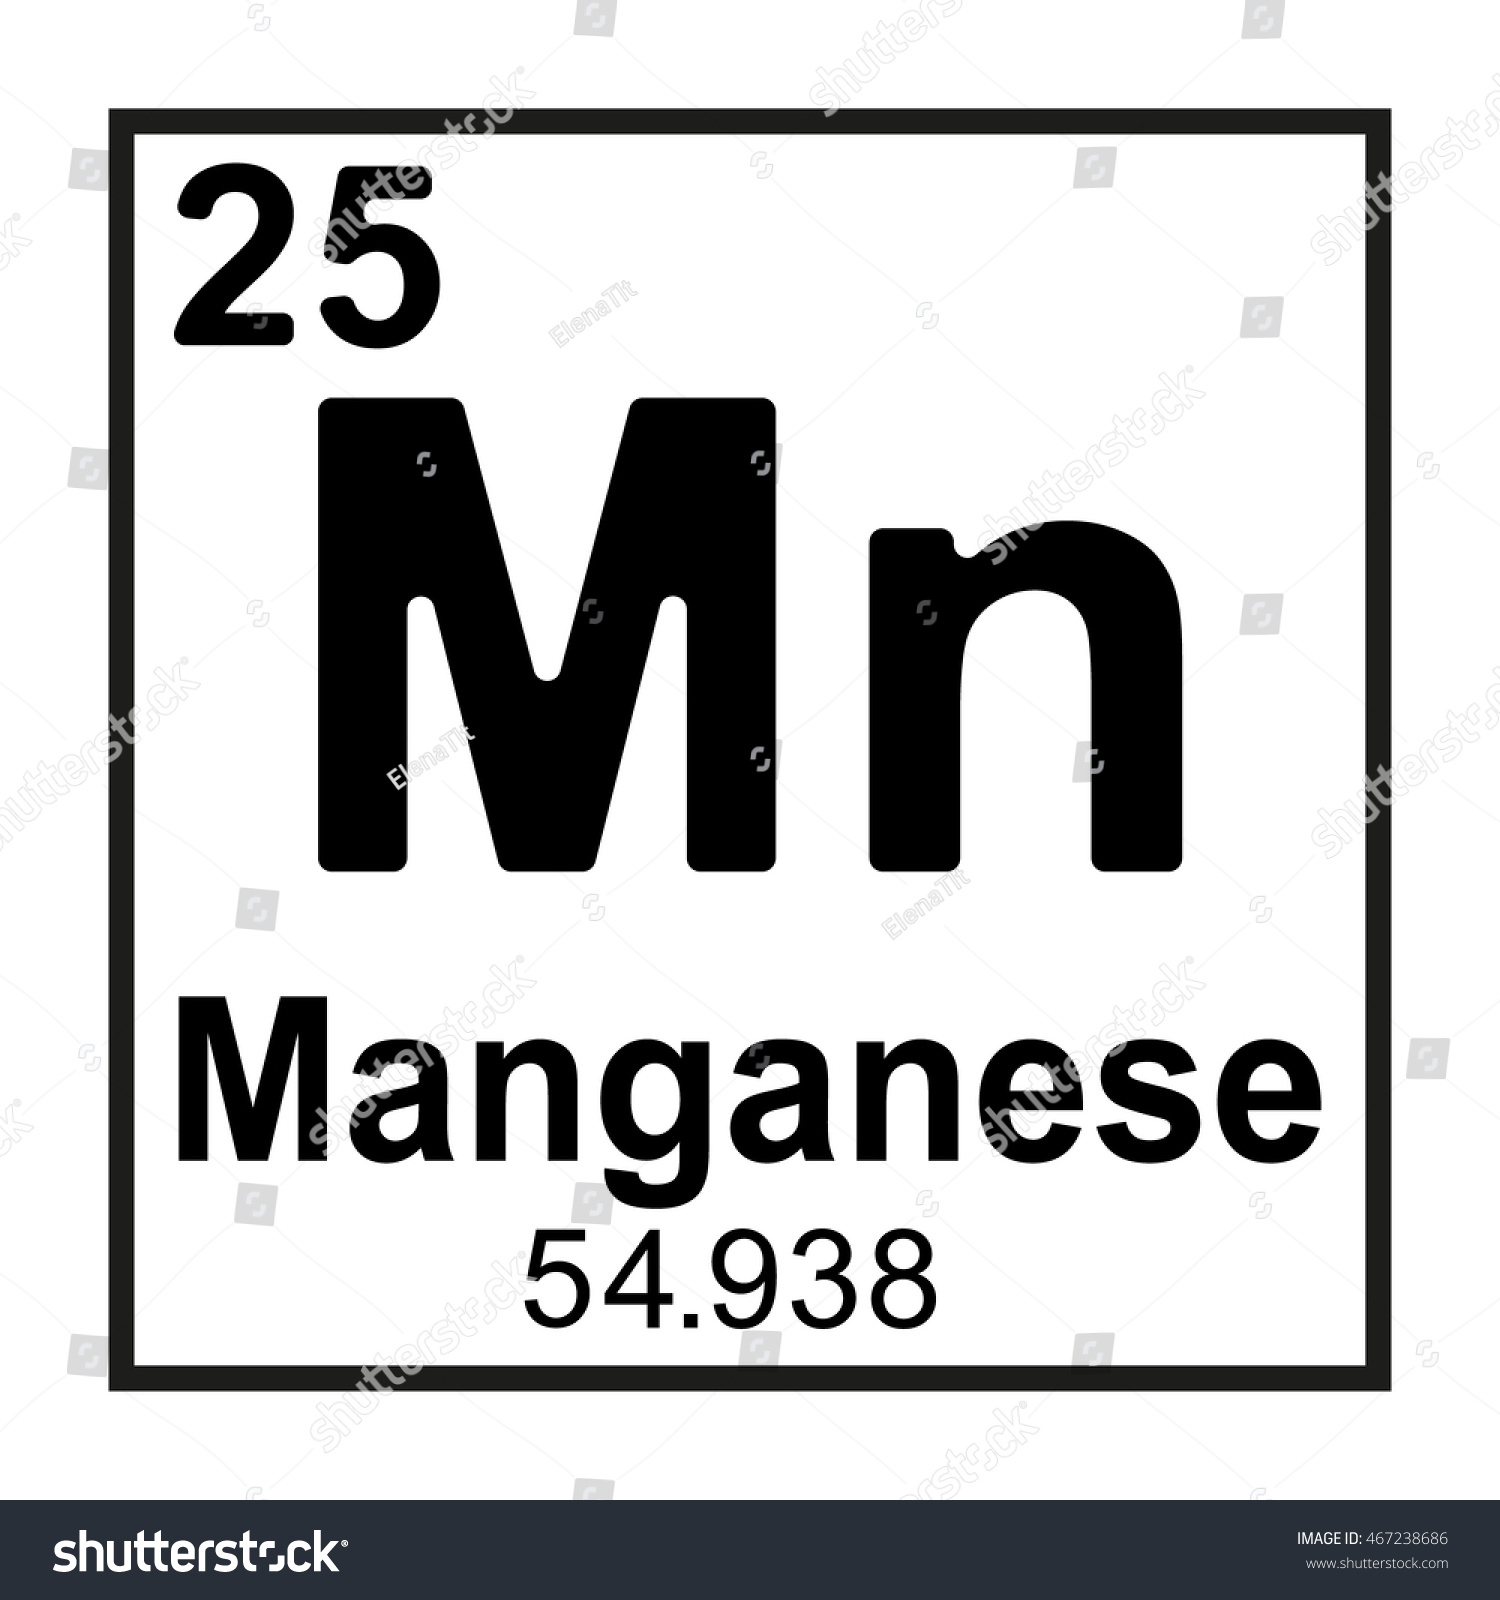 Periodic table element manganese stock vector 467238686 shutterstock periodic table element manganese gamestrikefo Images